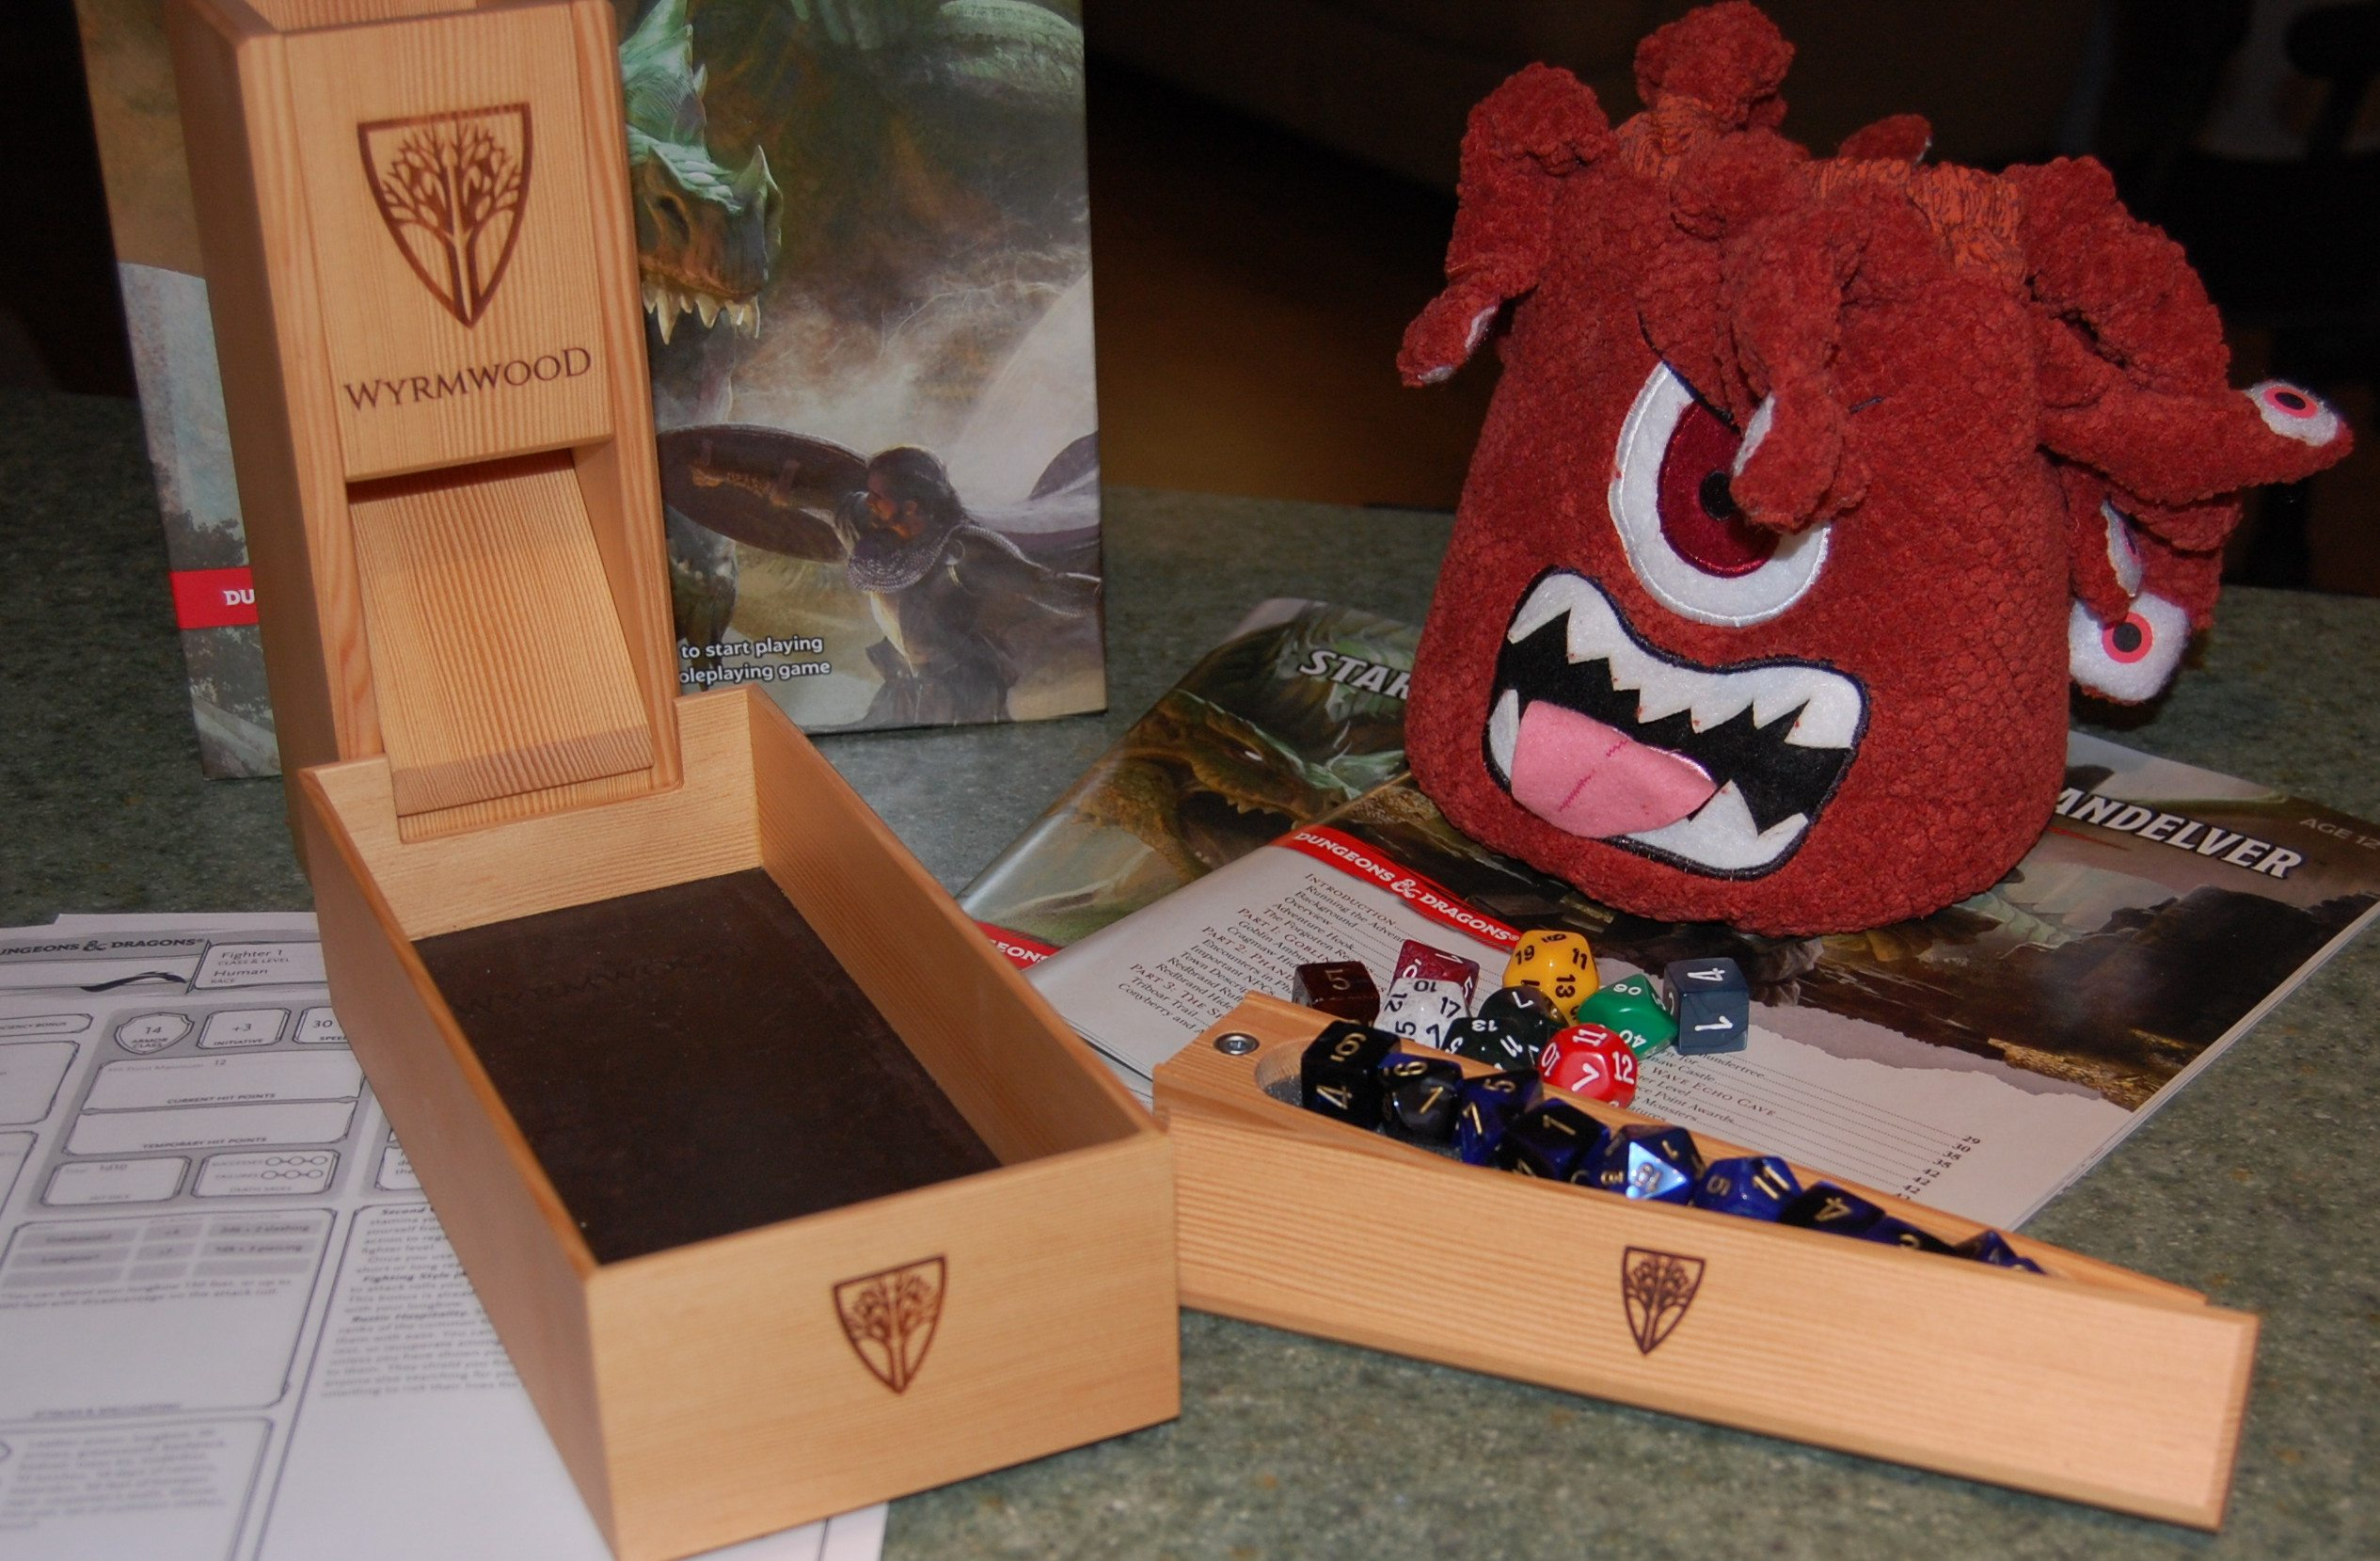 Beholder Dice Bag not Included